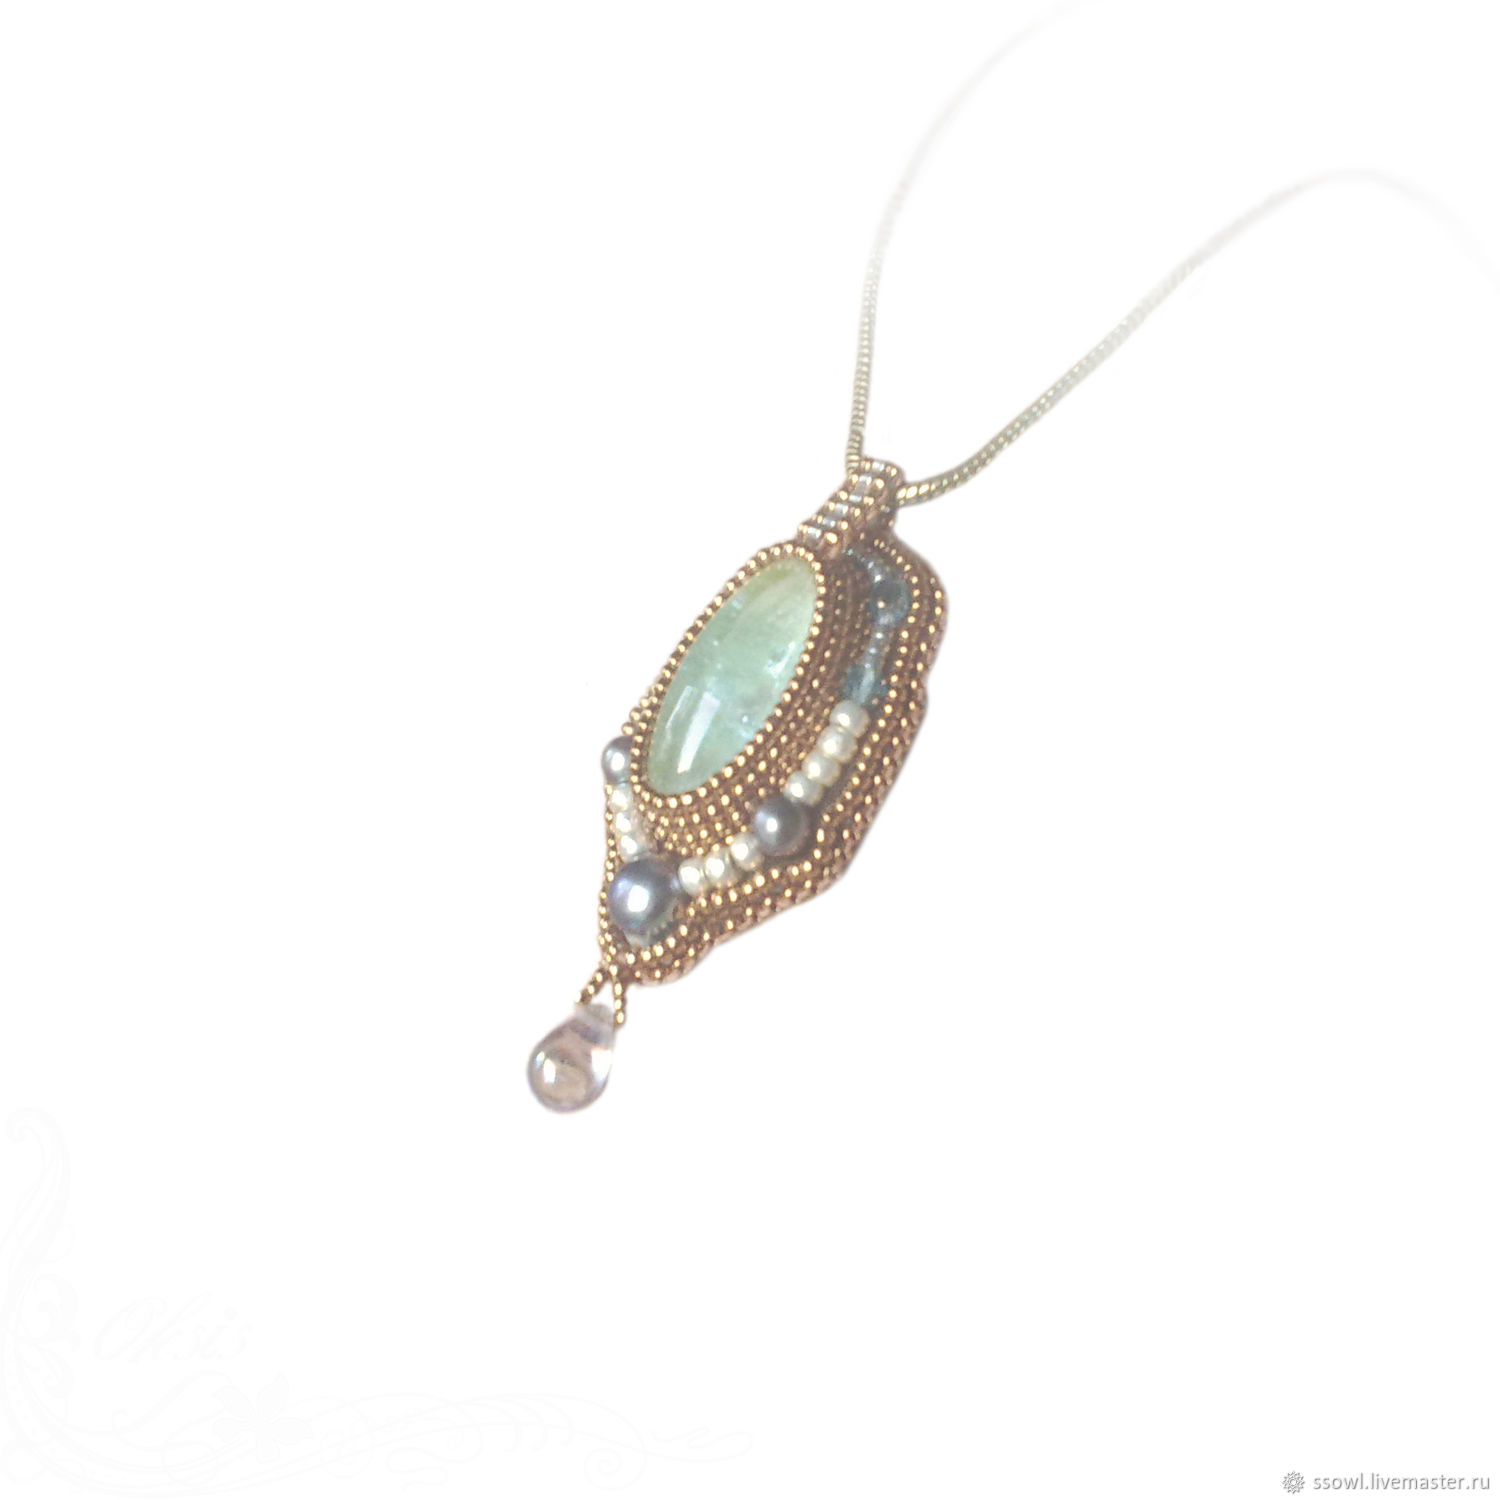 Small pendant pendant Classic natures. aquamarine, pearl, gold, silver beads, office decoration, for every day, small light blue green pendant drop pendant, minimalist, strict